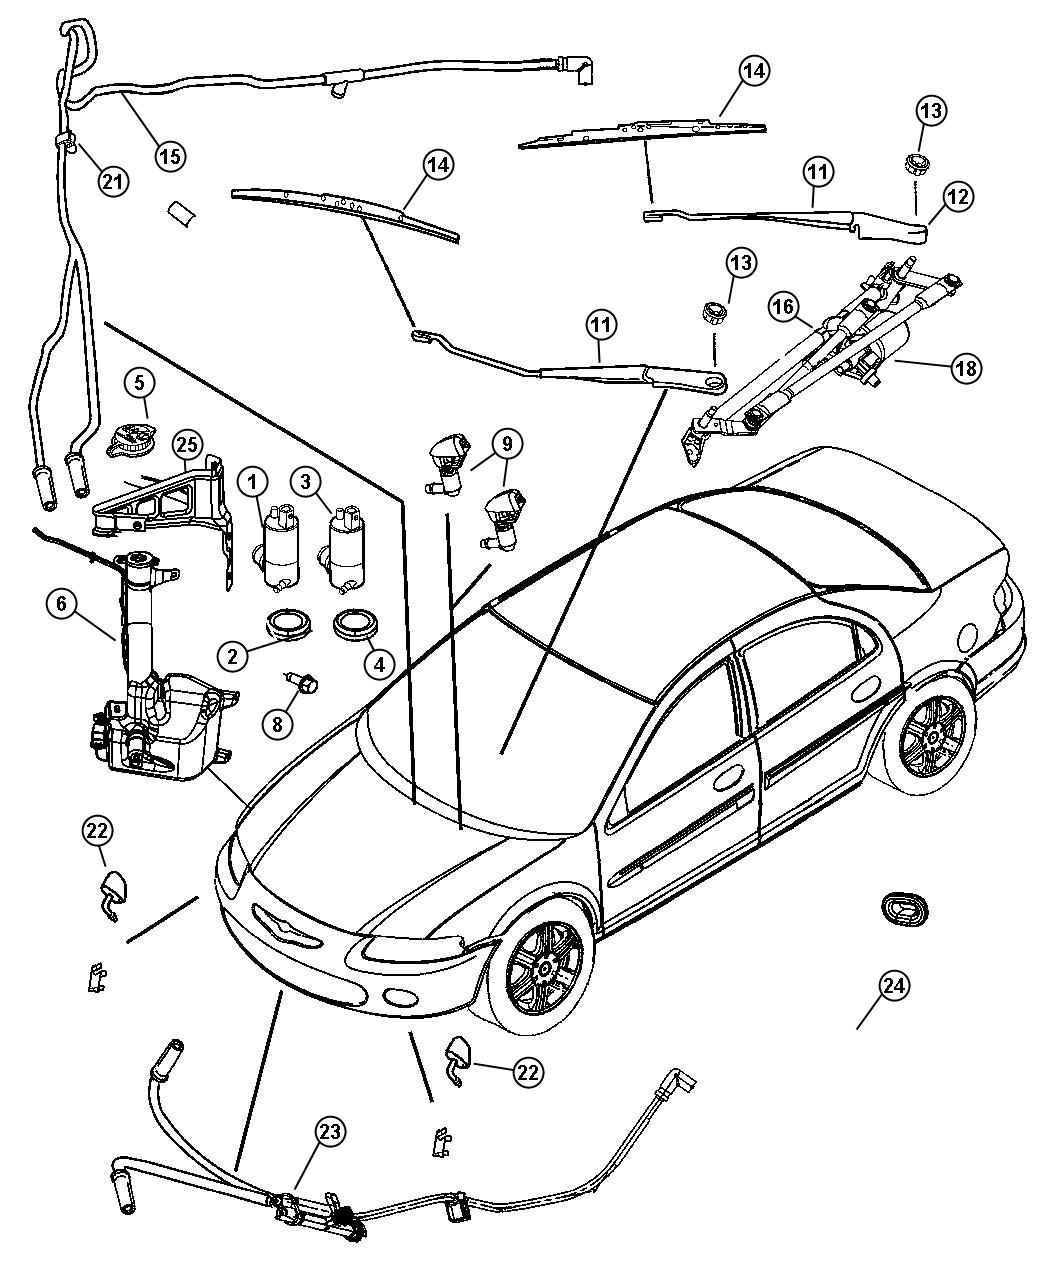 2005 honda element wiper washer fuse box diagram